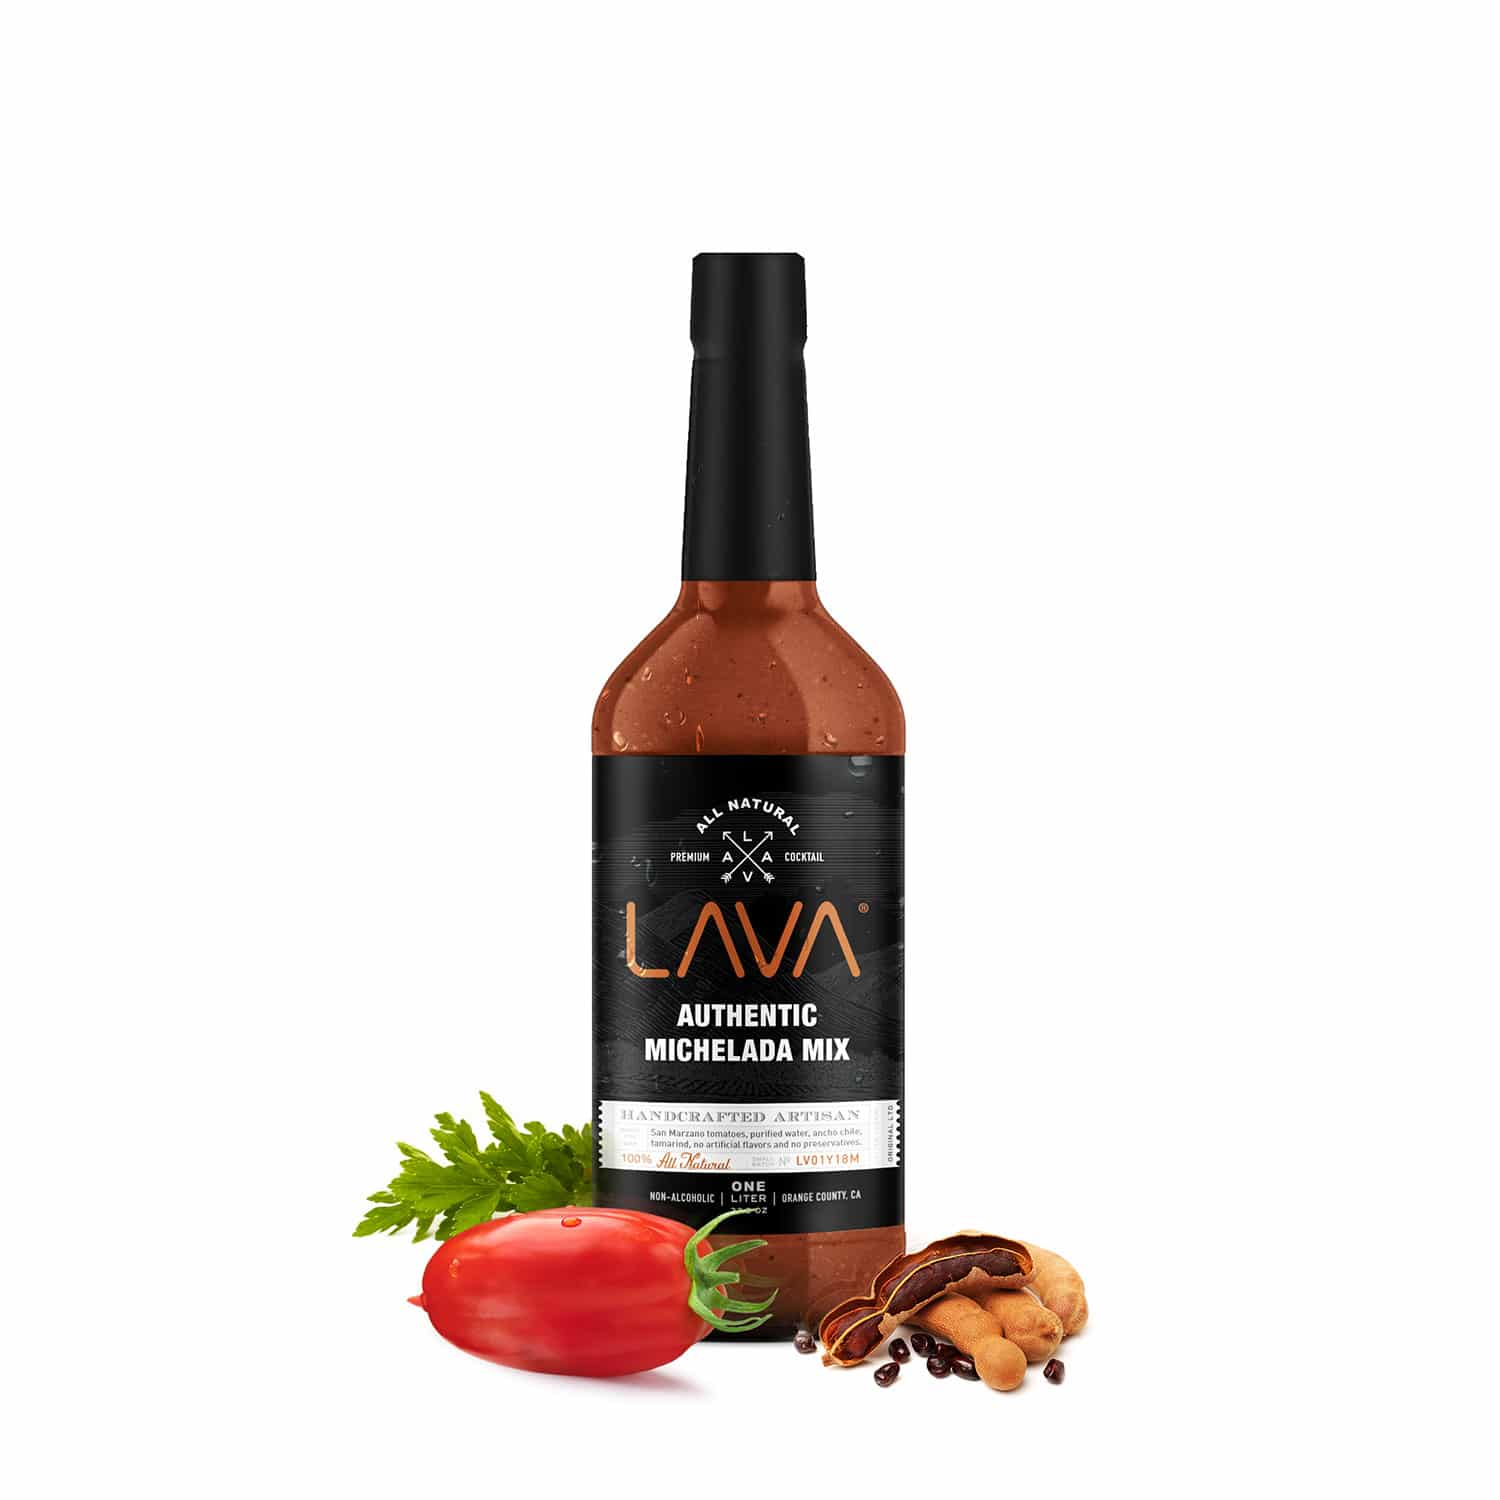 a bottle of lava michelada mix next to vegetables